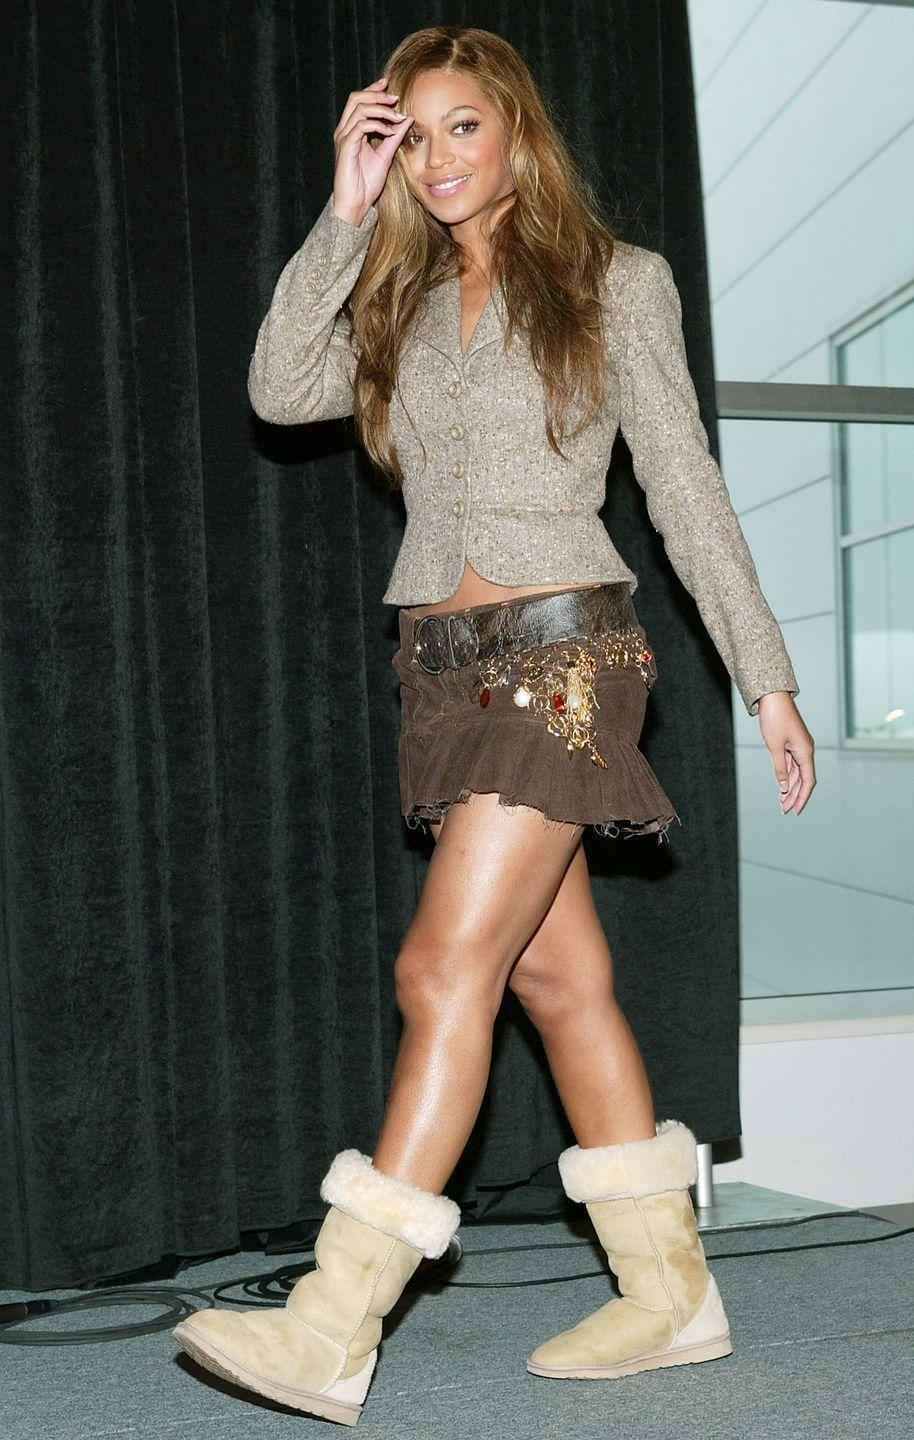 <p>Ugg boots and ruffled mini skirts—the outfit we all thought was *so* cute in 2004, including Beyoncé. </p>